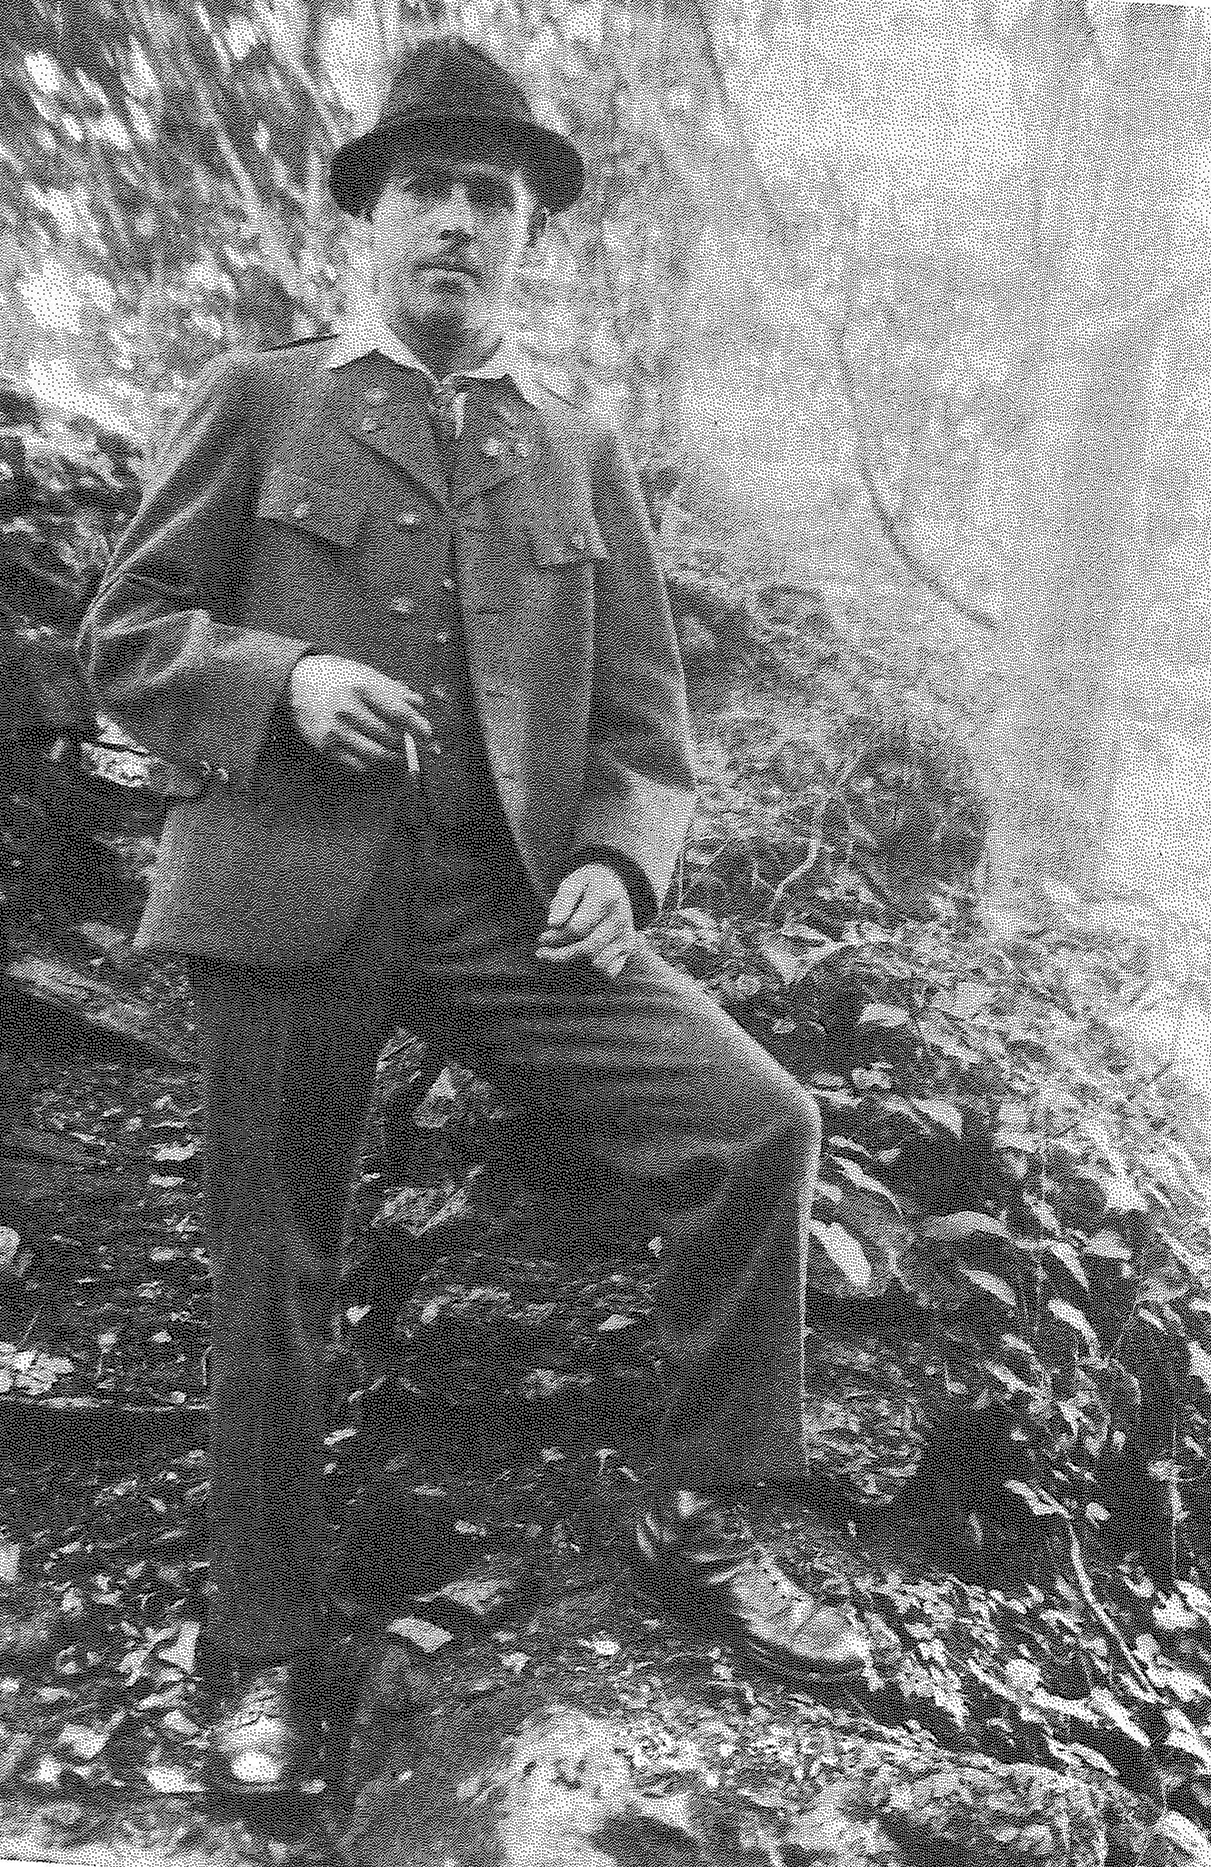 Franz Jagerstatter refused to support the Nazis, despite the pressure his village placed on him./Styria Verlag. Used with permission